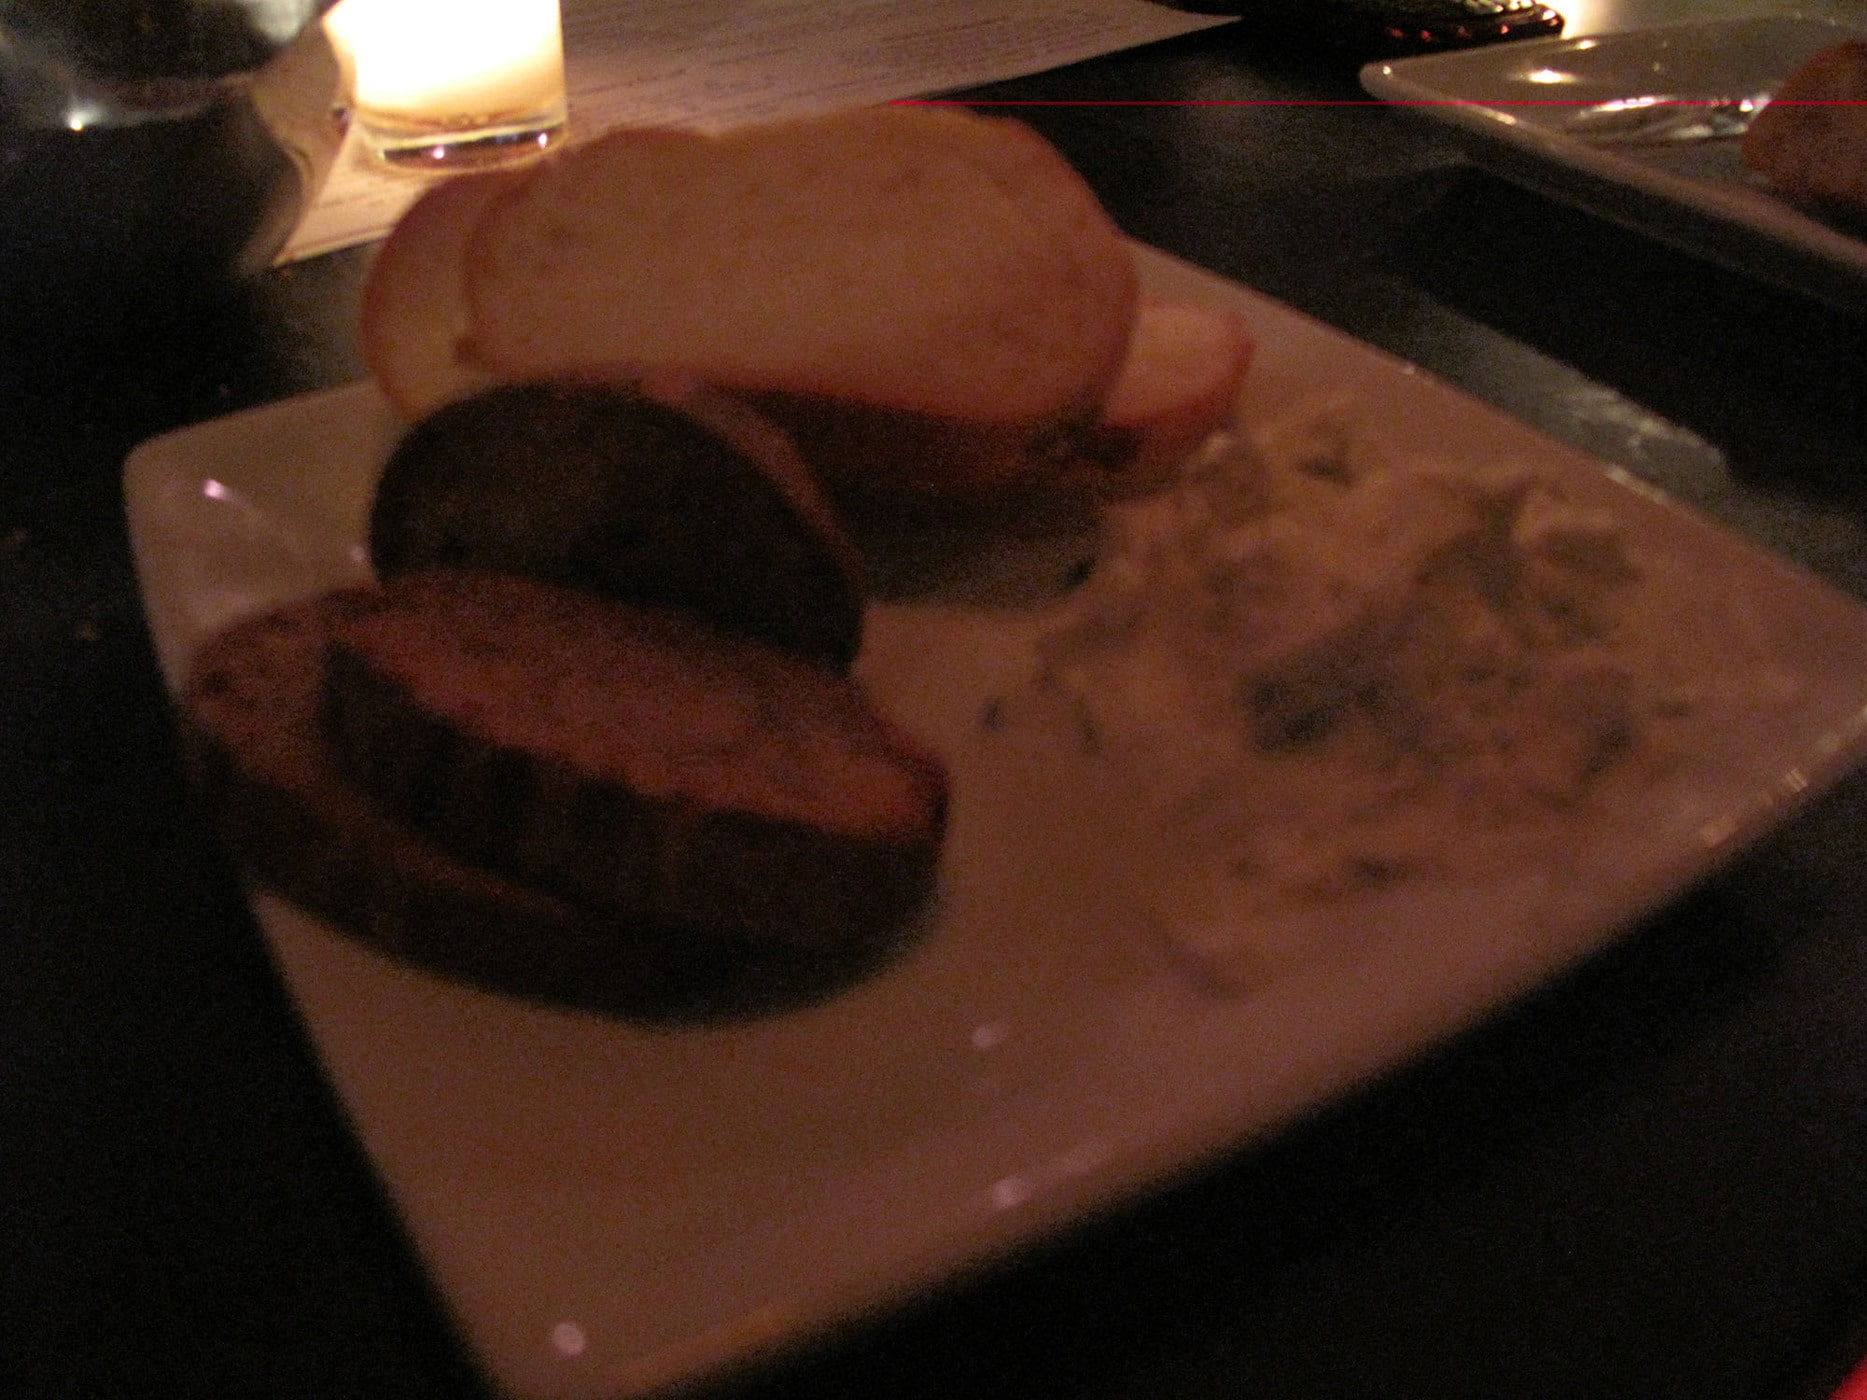 Cheeses at Volo Wine Bar in Chicago